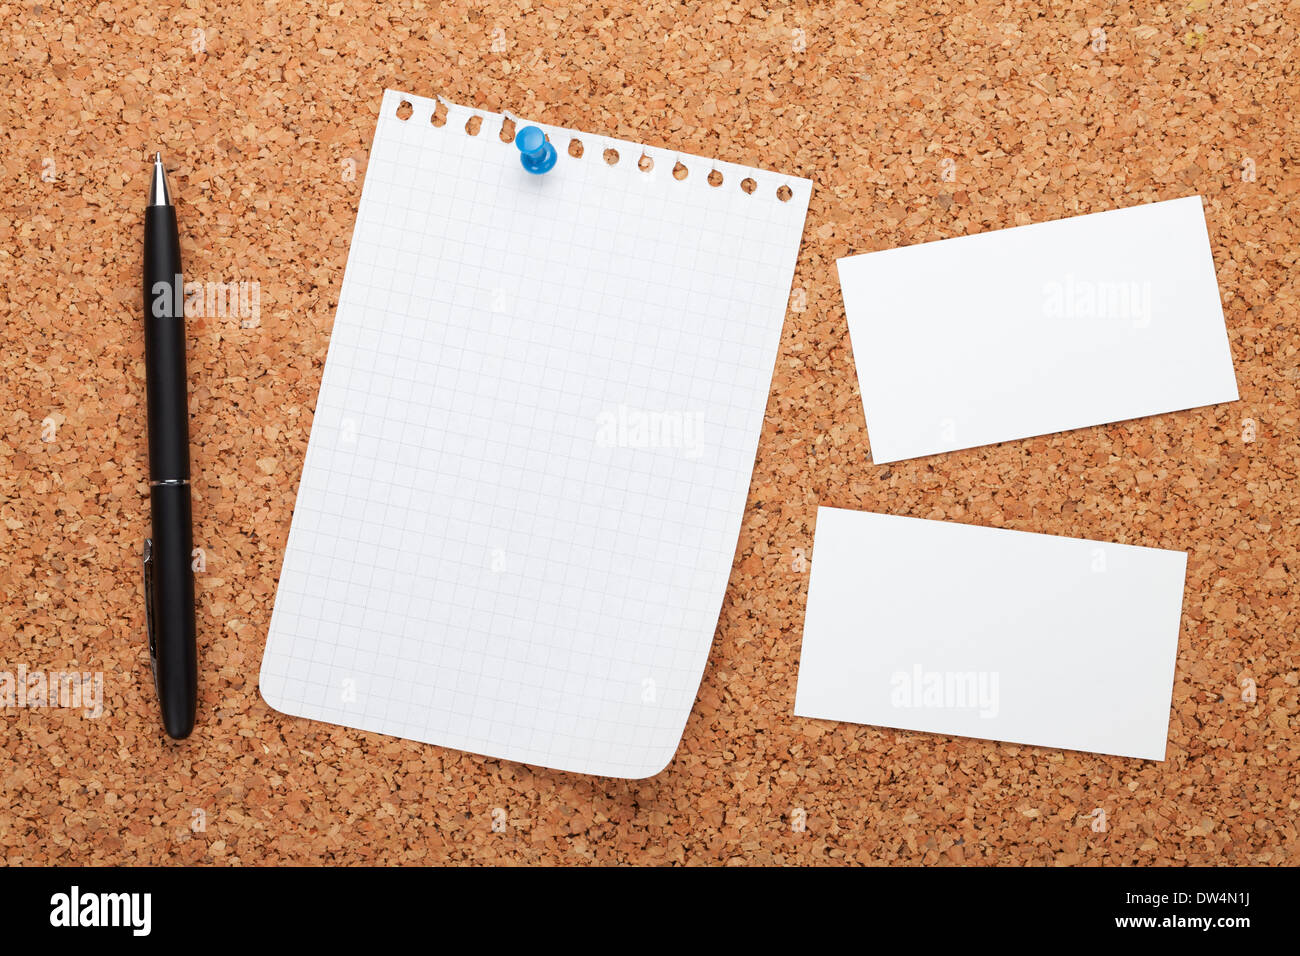 Blank notepad paper, business cards and pen on cork wood notice ...